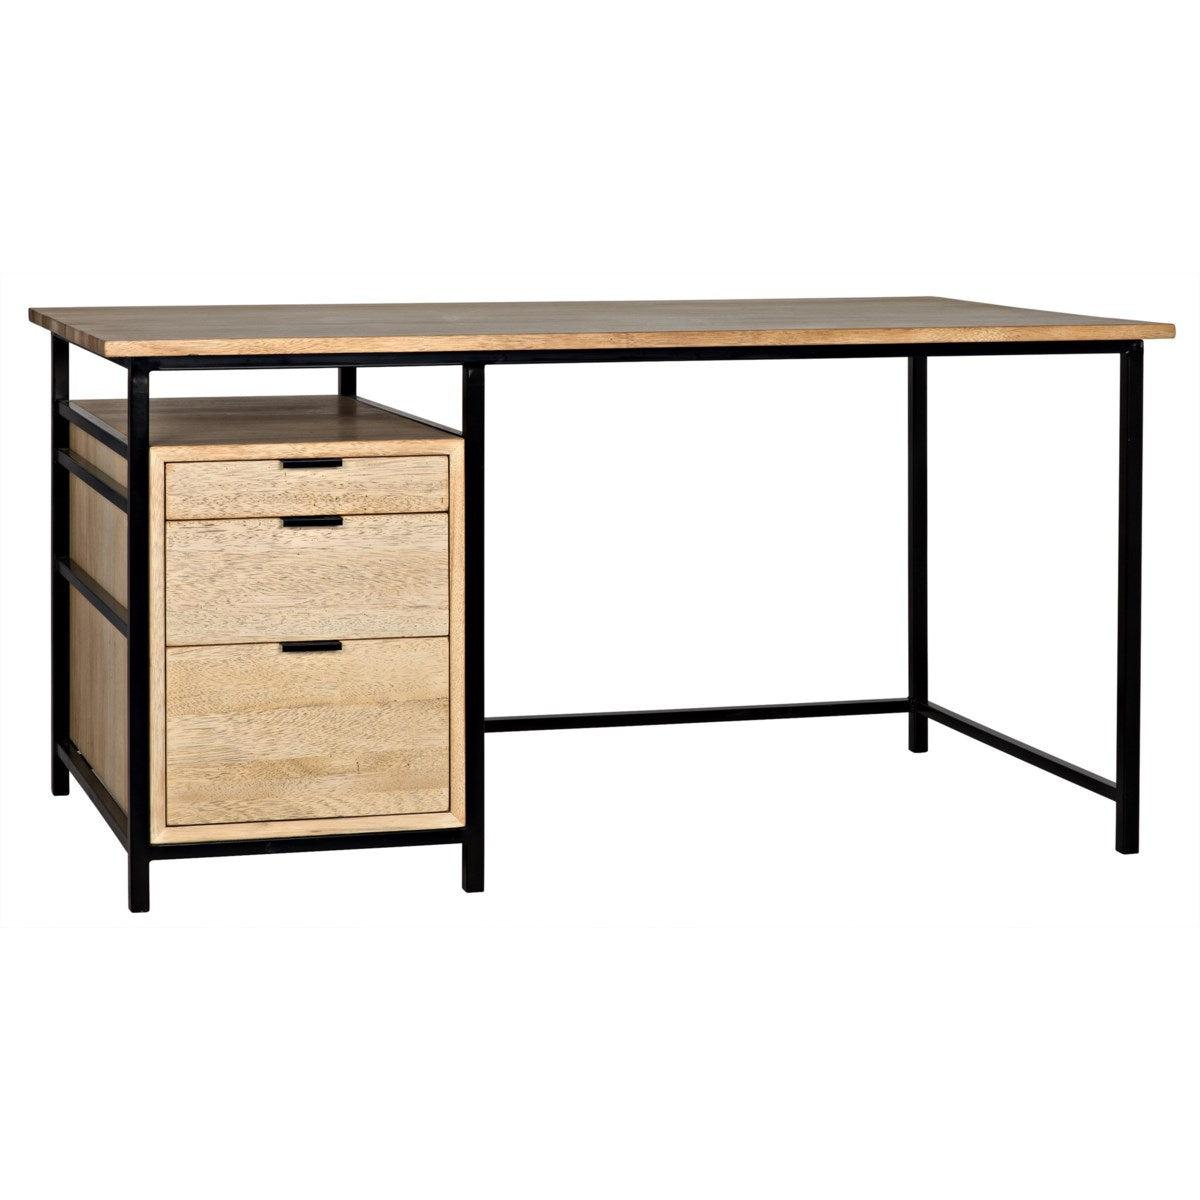 Noir Furniture Nabucco Desk, Bleached Walnut and Metal-Noir Furniture-Blue Hand Home